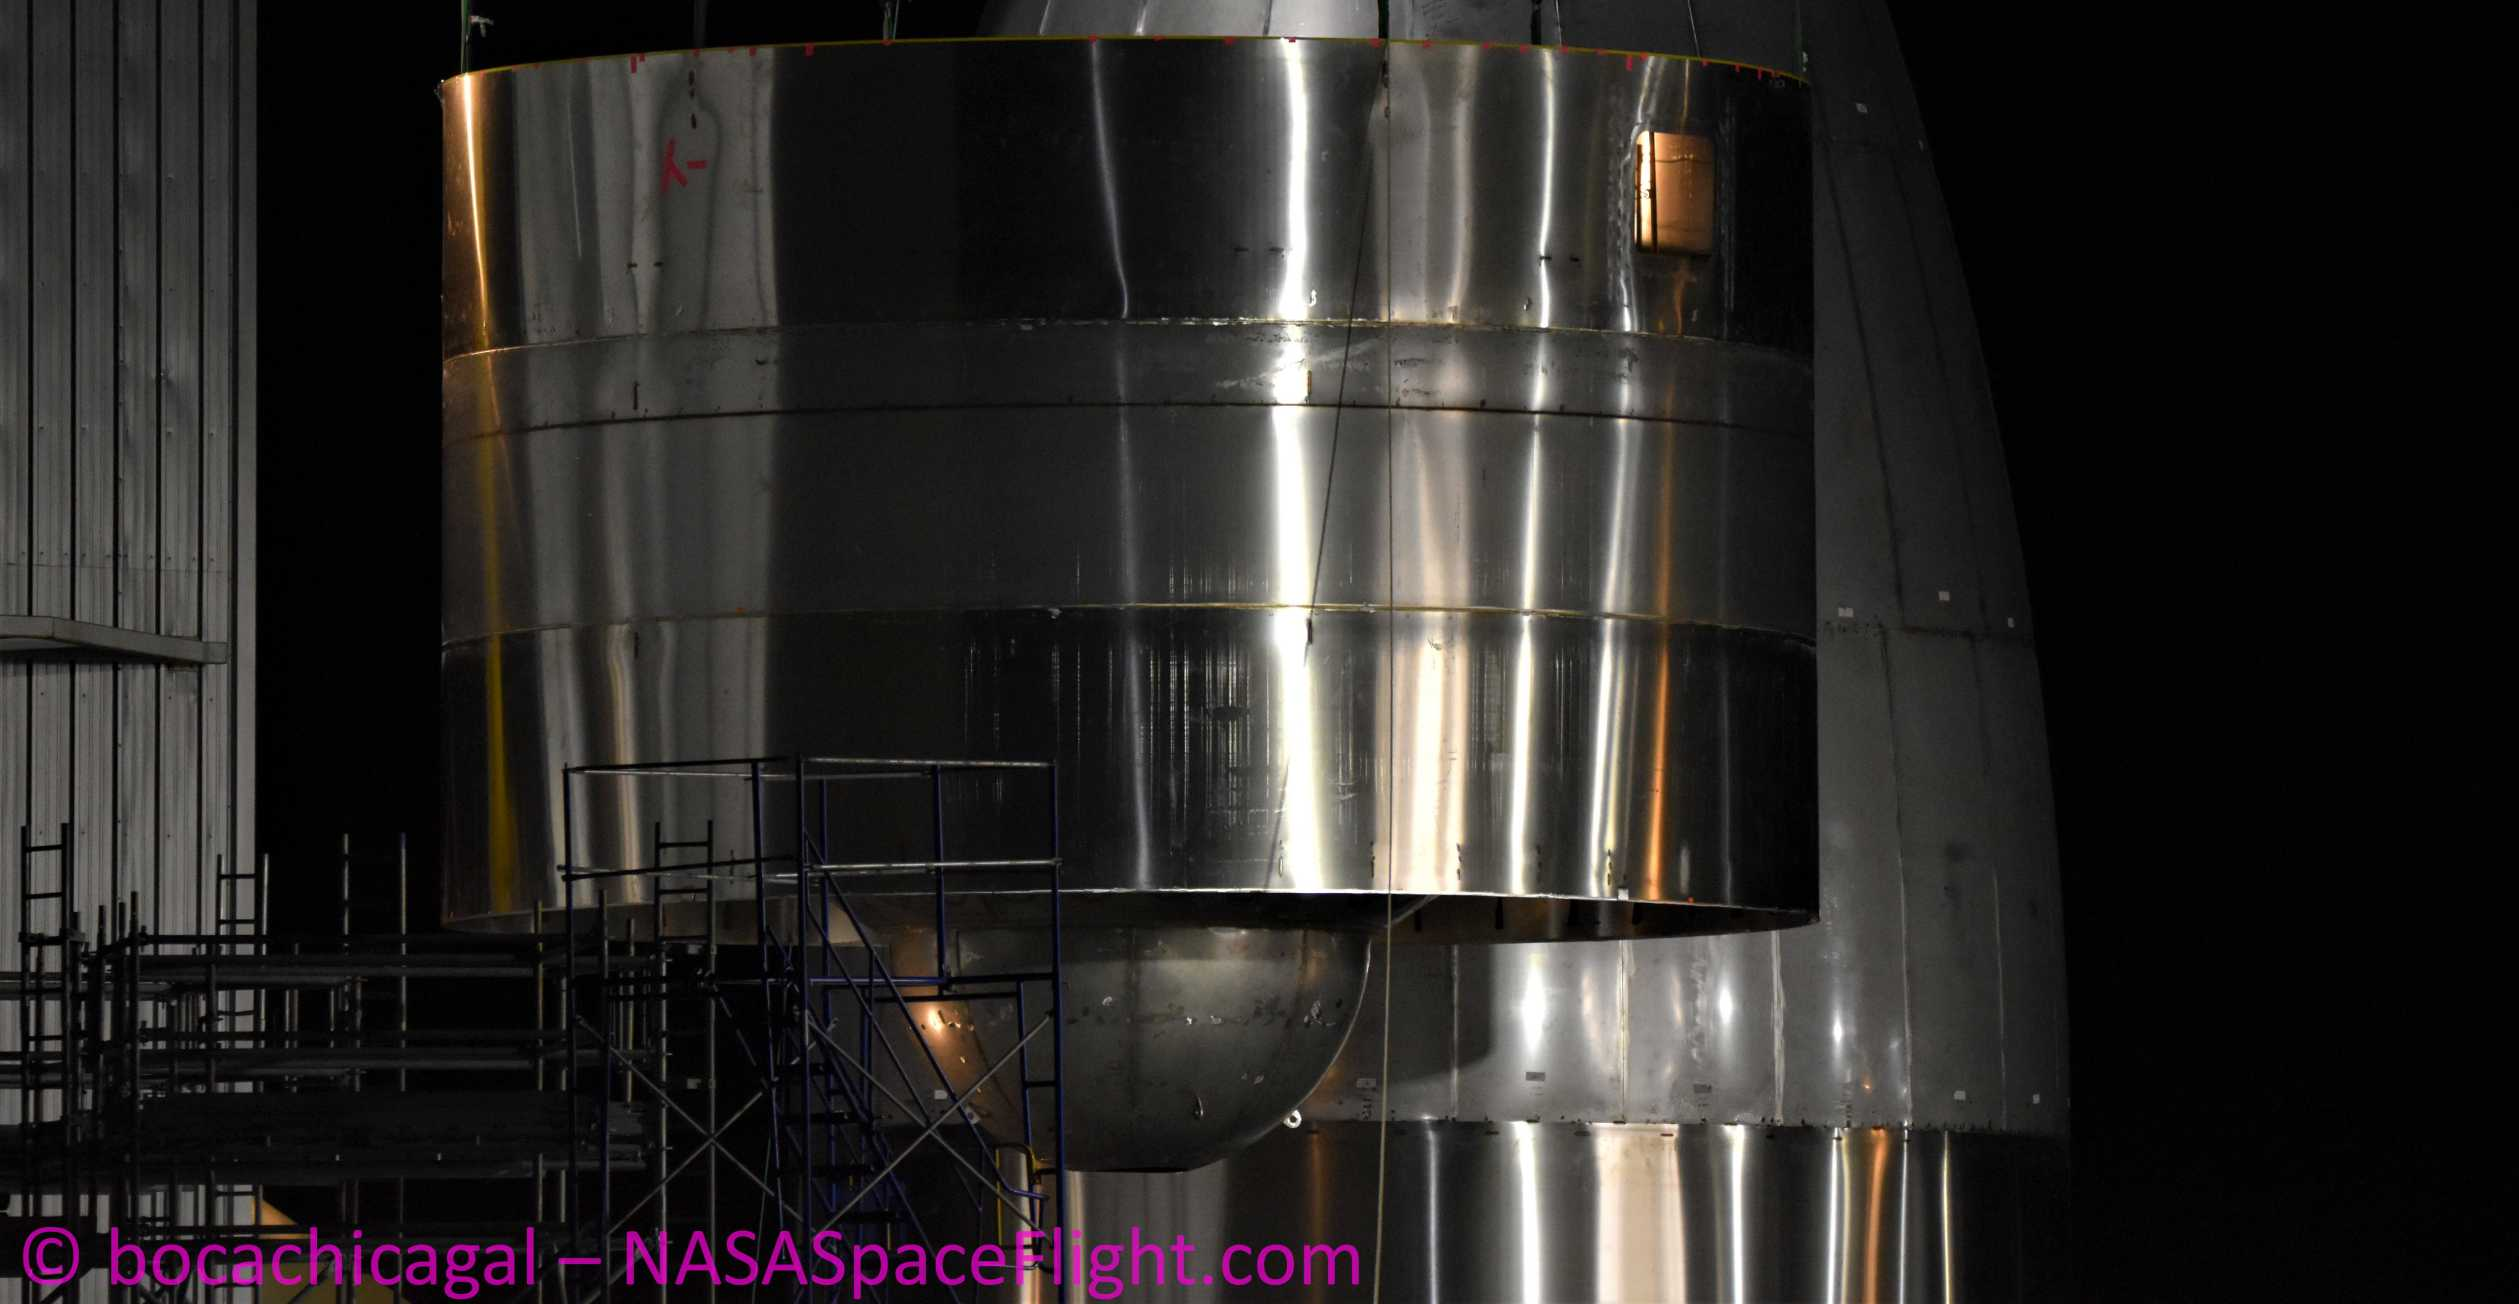 Starship Boca Chica 050120 (NASASpaceflight – bocachicagal) SN5 common dome 3 crop (c)